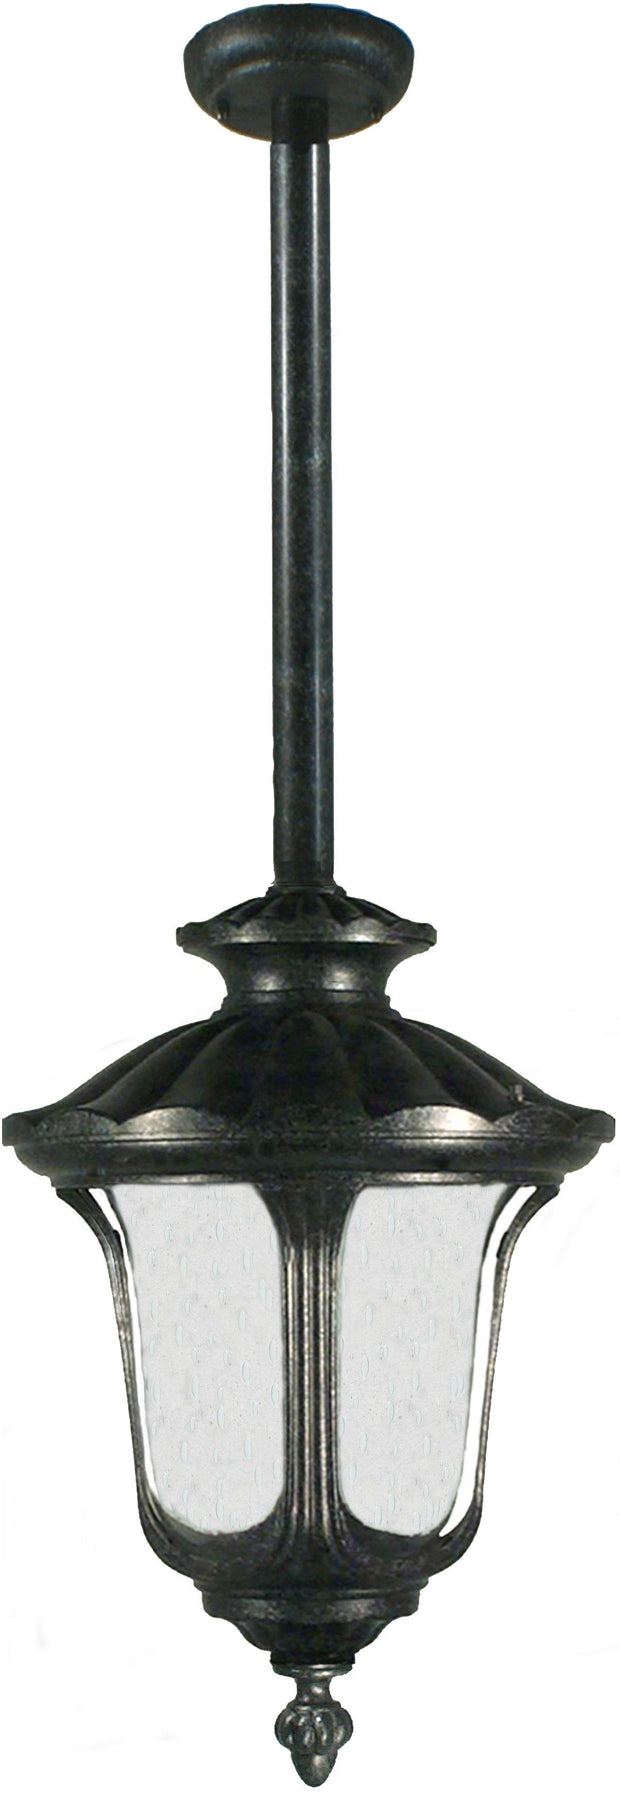 Waterford Exterior Rod Pendant Light